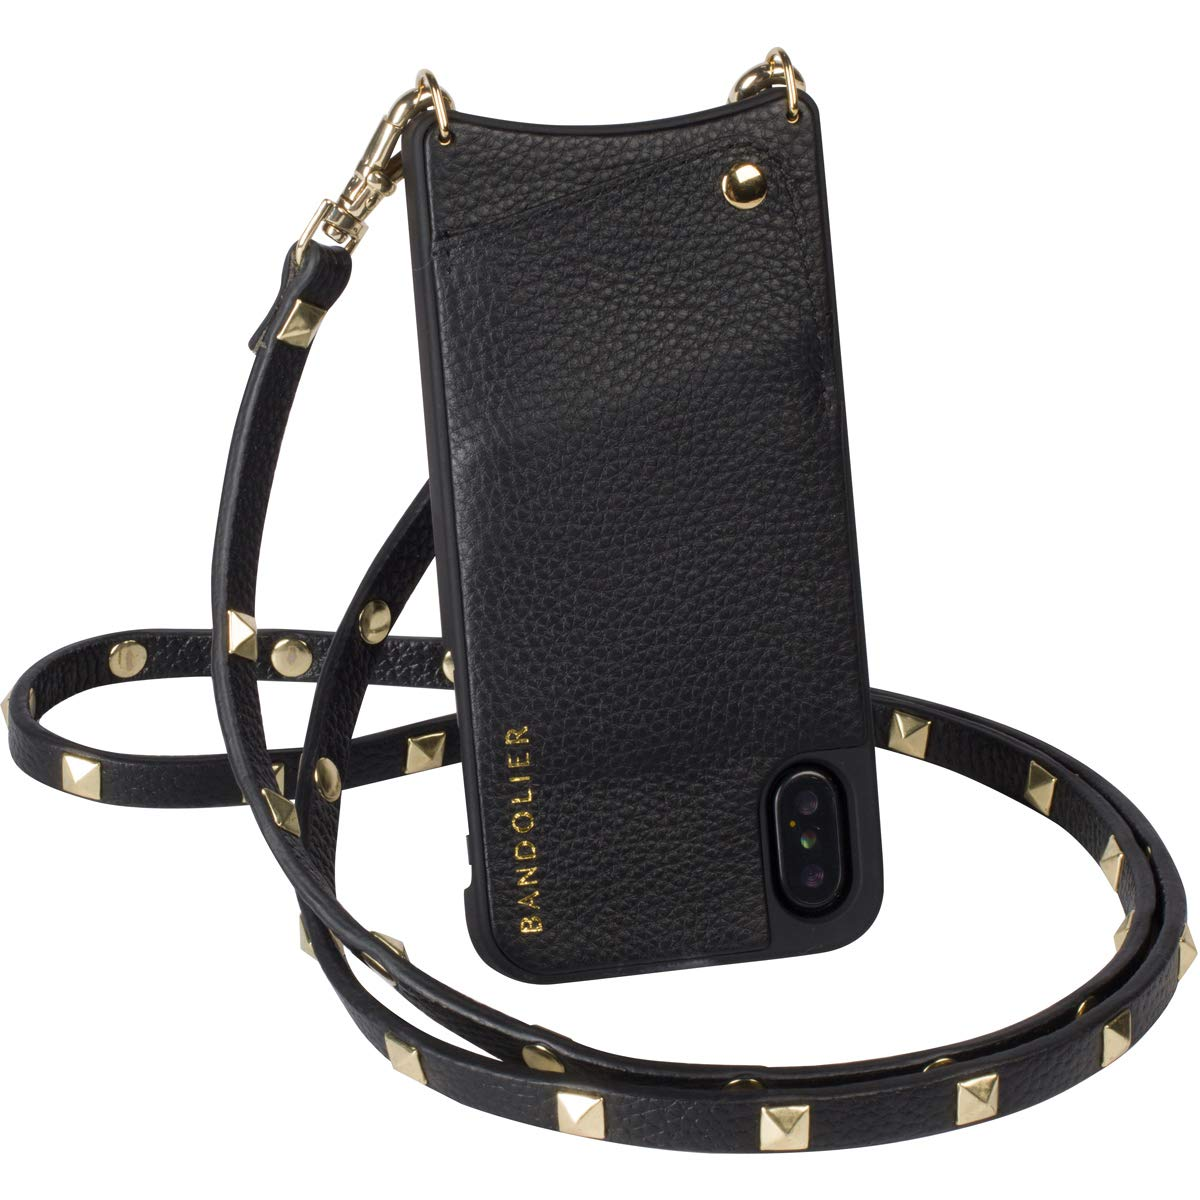 Bandolier [Sarah] Crossbody Phone Case and Wallet - Compatible with iPhone 8 Plus, 7 Plus, 6 Plus, 6s Plus - Black Pebble Leather with Gold Detail